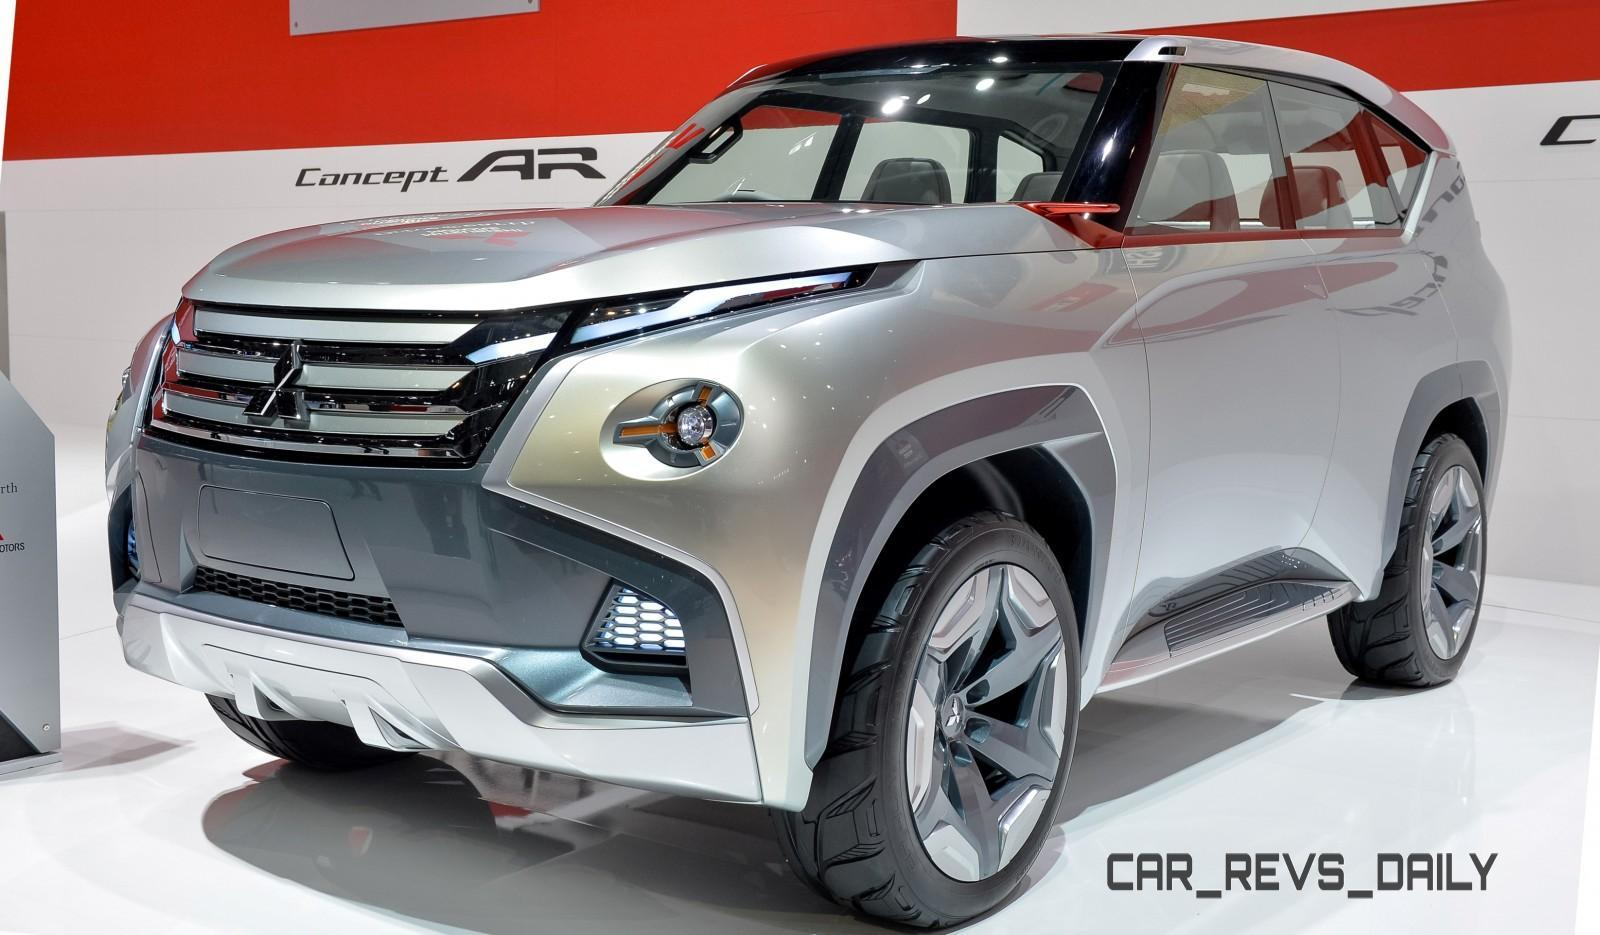 Latest Mitsubishi Exterior Designs Are Bizarre and Alarming 1